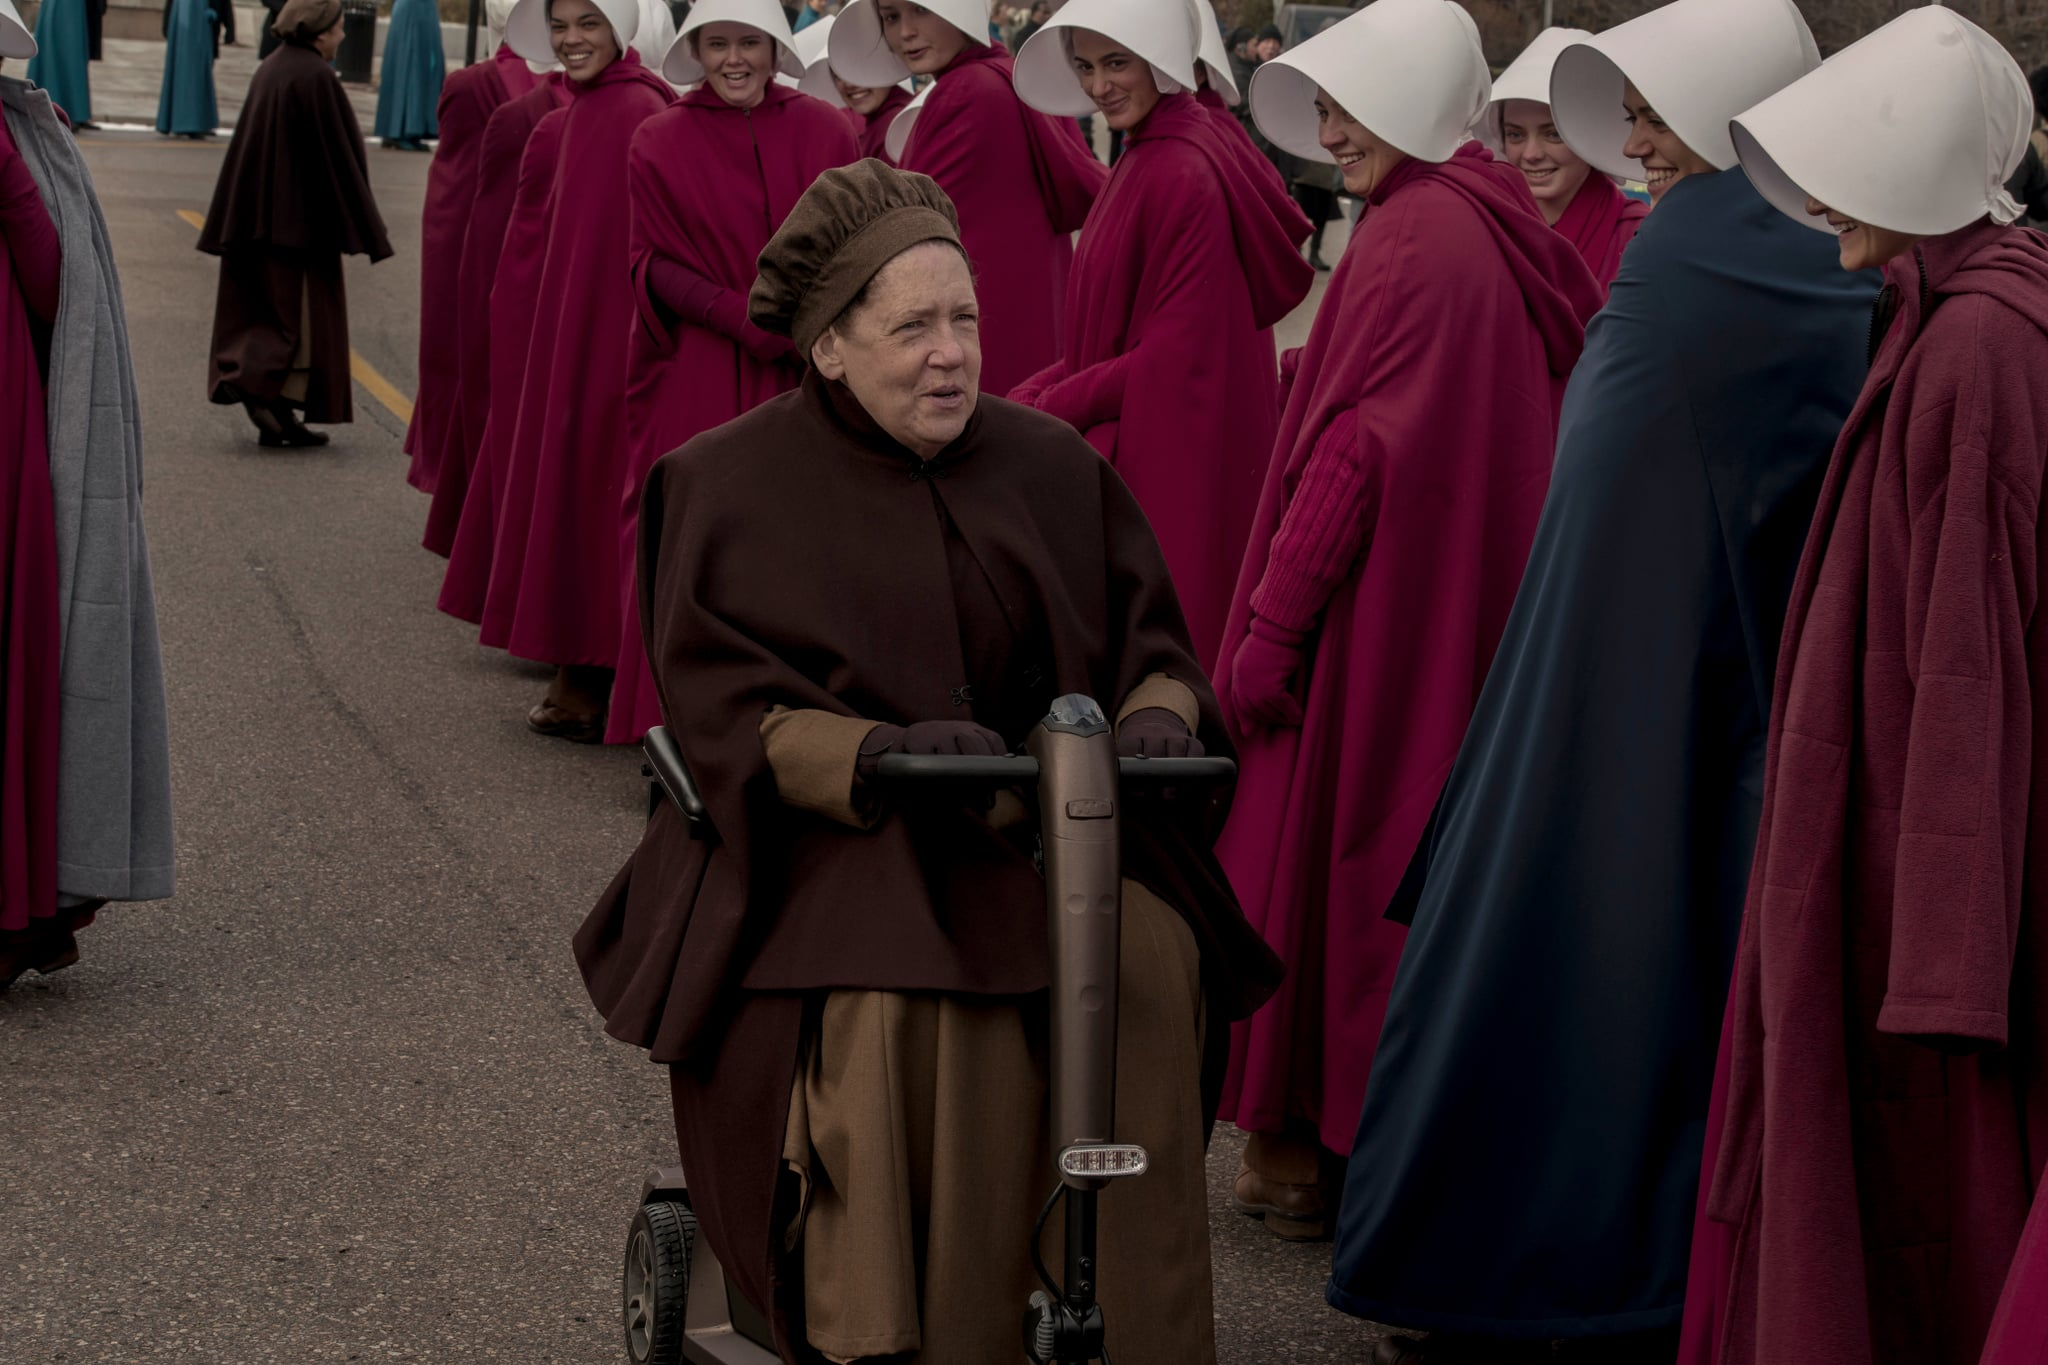 THE HANDMAID'S TALE, Ann Dowd in 'God Bless the Child', (Season 3, Episode 304, aired June 12, 2019), ph: Elly Dassas / Hulu / Courtesy Everett Collection